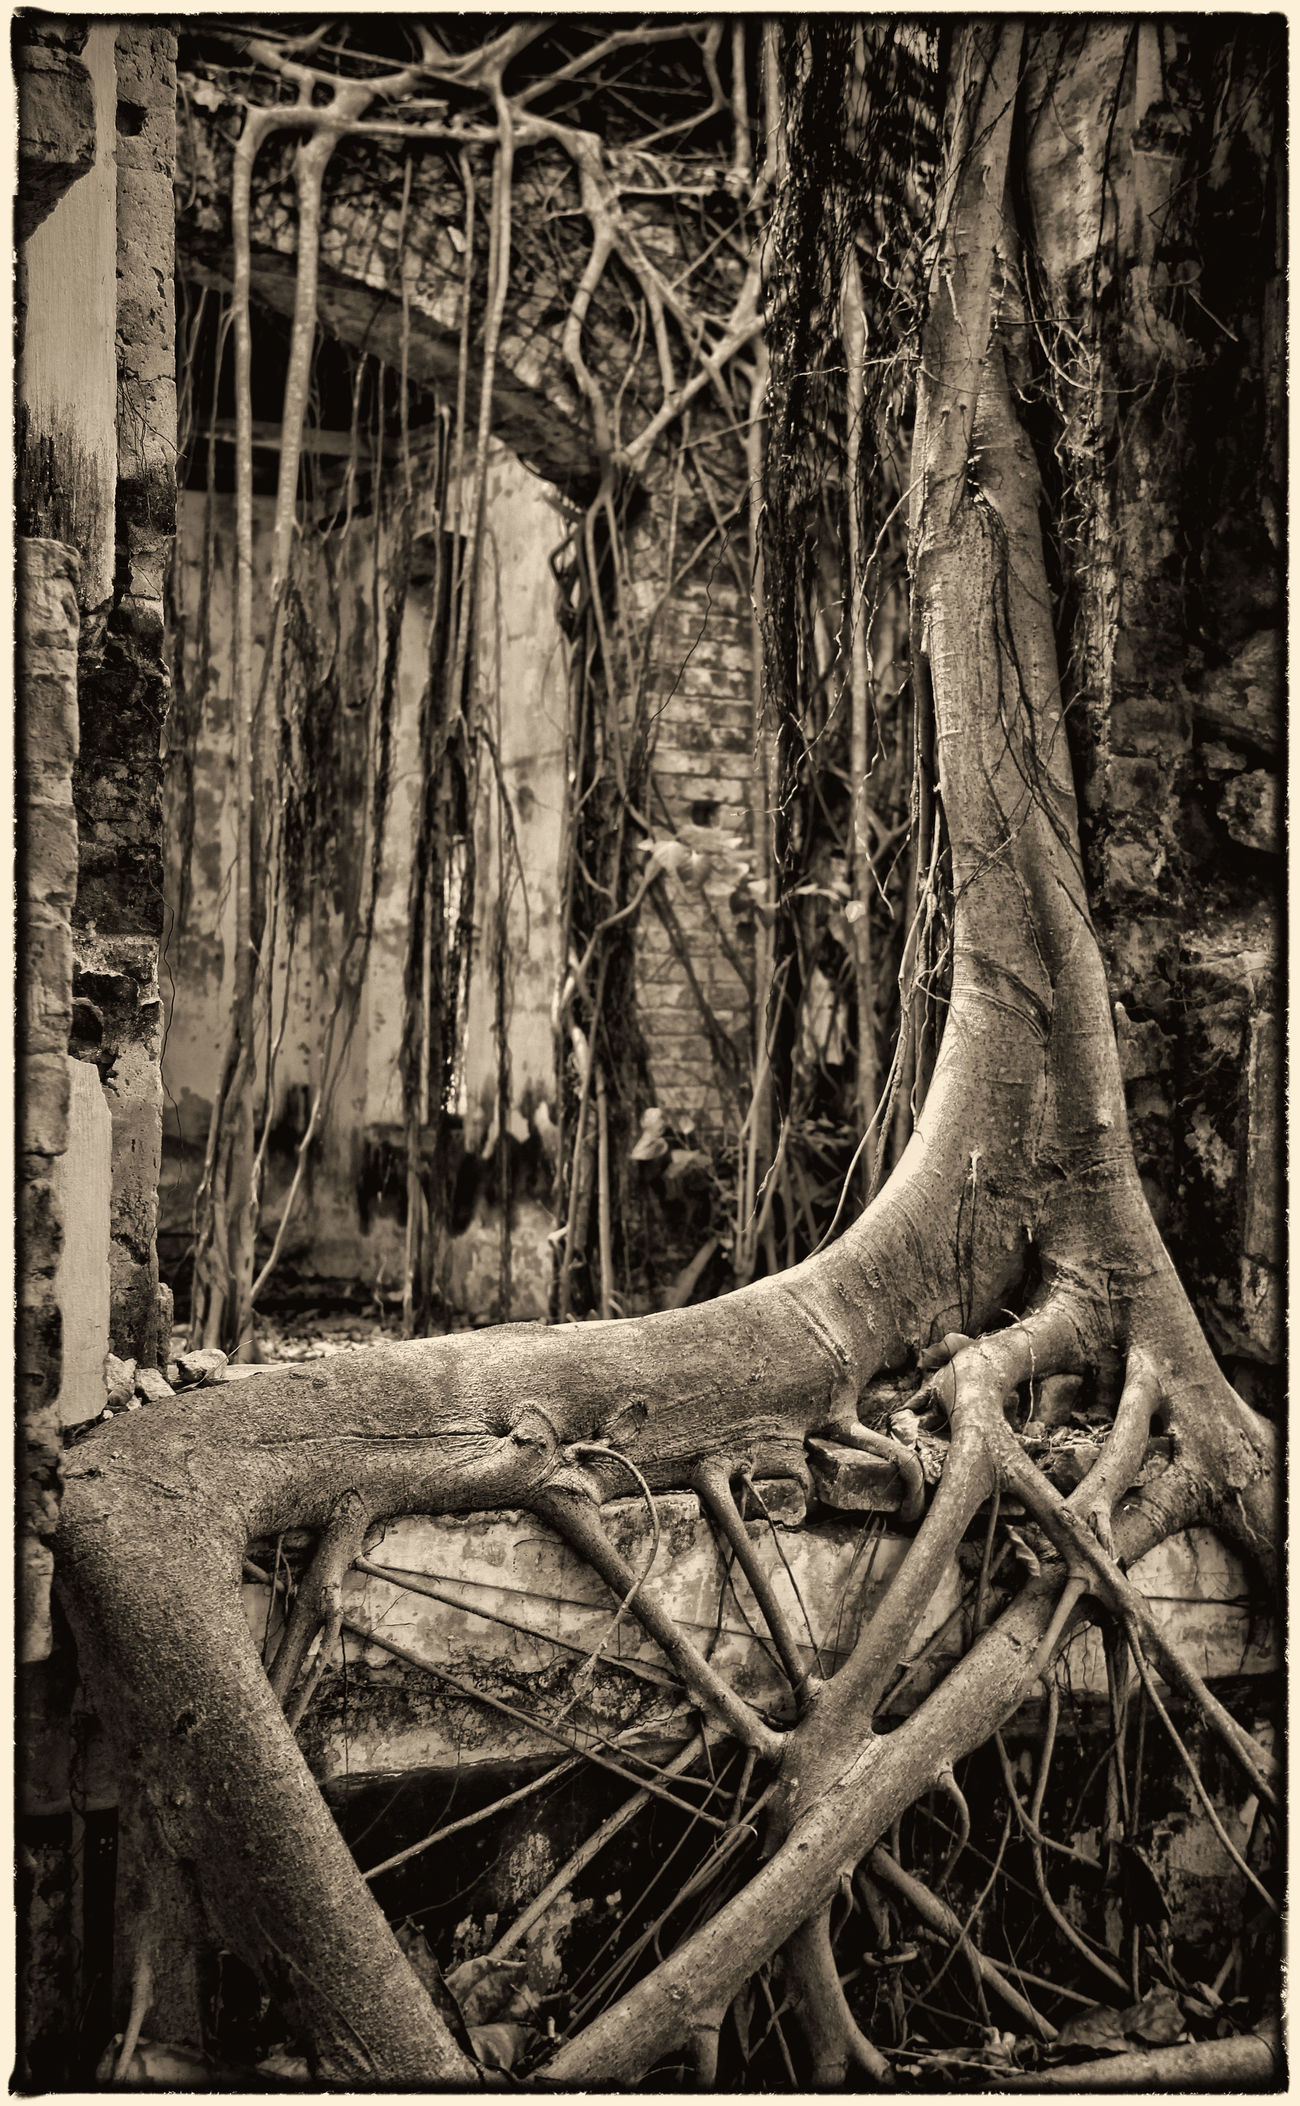 Beauty In Nature Black And White Collection  Blackandwhite Photography Haunted House Nature Root Rundown House Tree Trunk Vietnam Travel Vietnam Trip